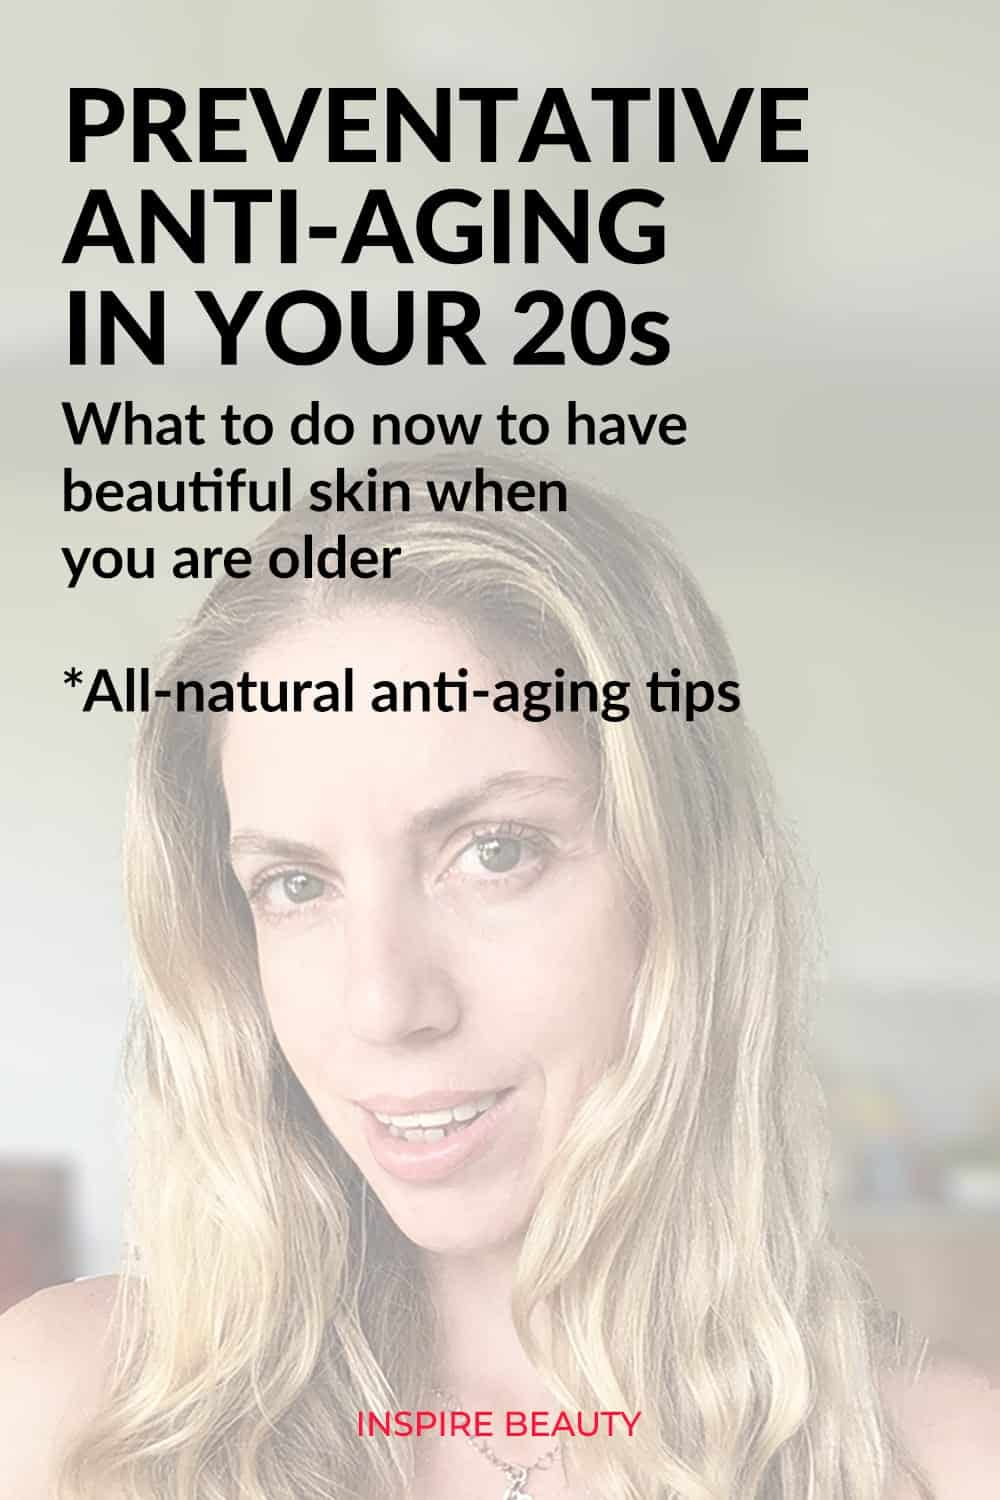 Preventative anti-aging in your 20s, all natural anti-aging tips on how to have great skin as you get older.